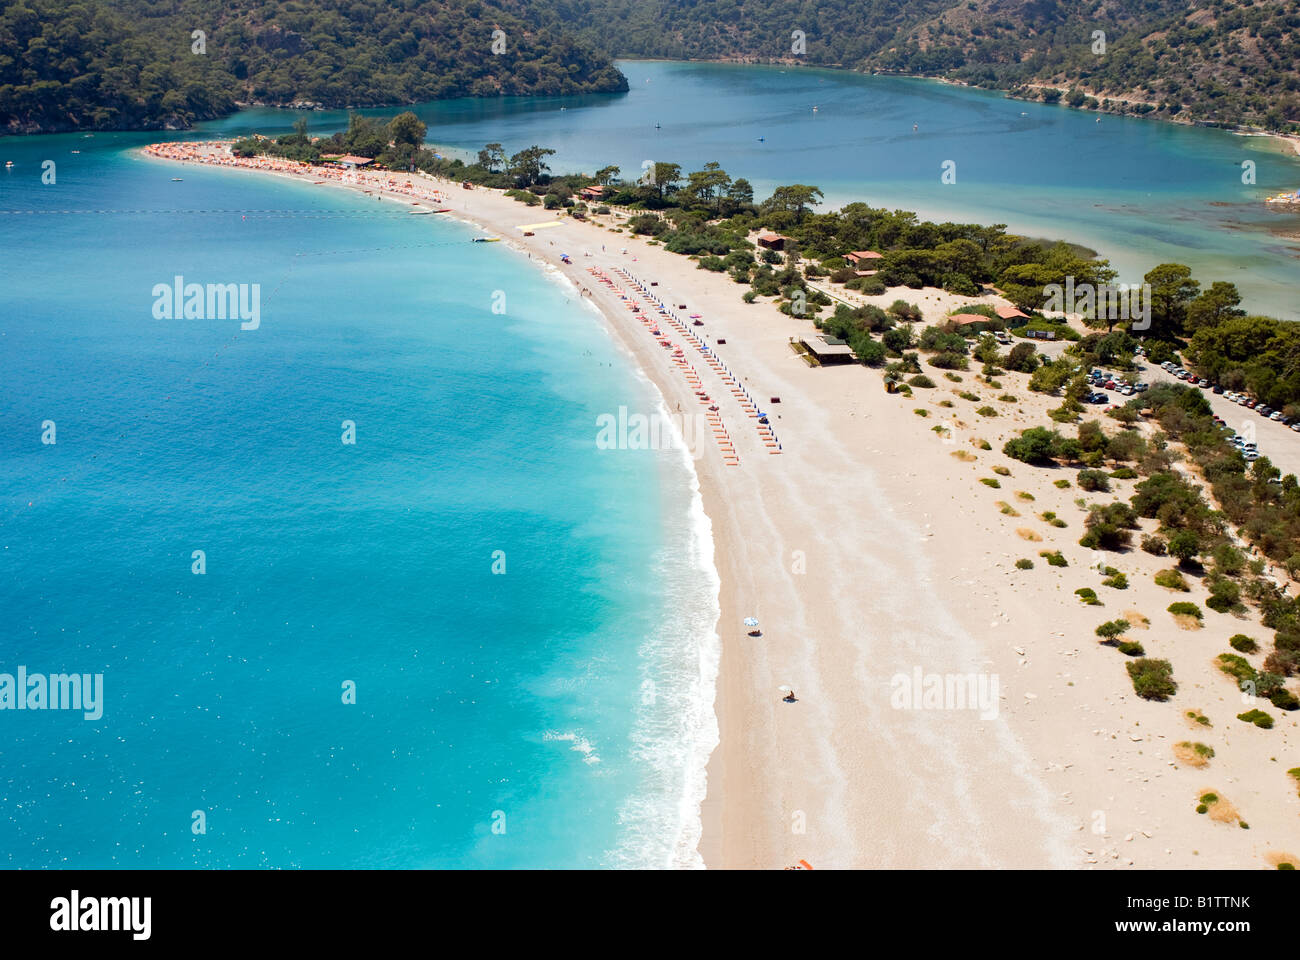 Arial view of Oludeniz beach in Fethiye, Mugla Turkey from a paraglider who jumped off babadag mountain - Stock Image